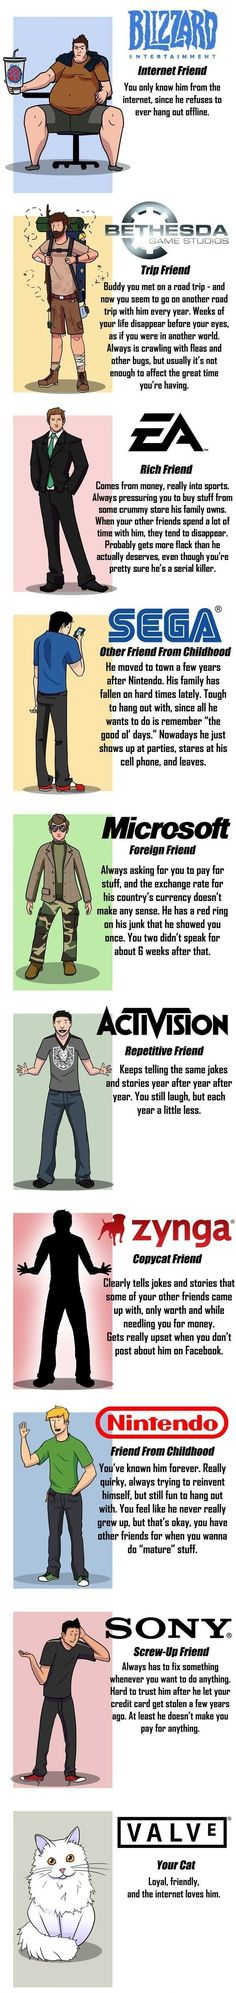 Funny pictures about Gamer Friends. Oh, and cool pics about Gamer Friends. Also, Gamer Friends. Video Game Logic, Video Games Funny, Funny Games, Funny Videos, It's Funny, Hilarious, King's Quest, Videogames, Video Game Companies